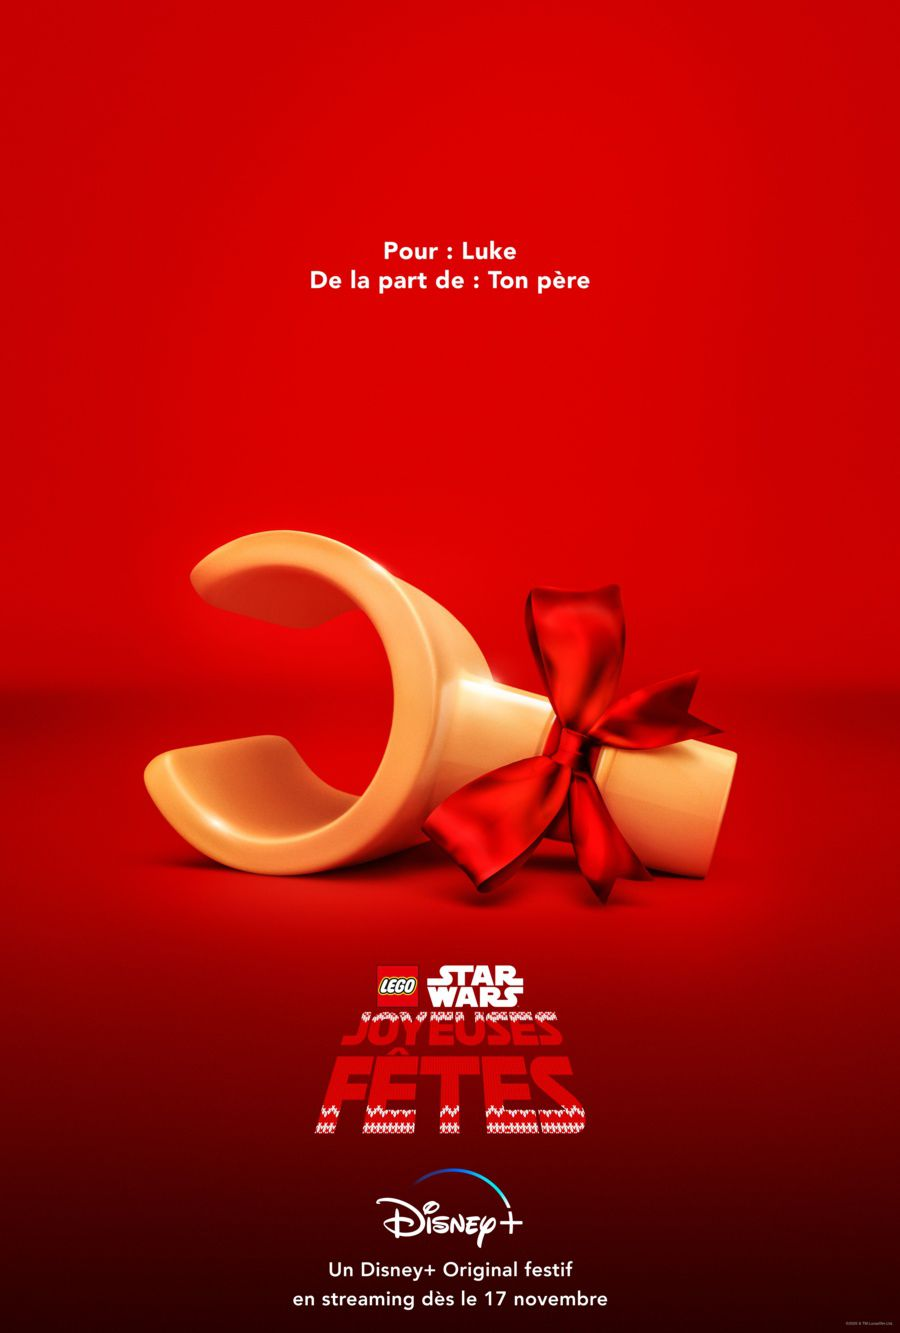 « The LEGO Star Wars Holiday Special » en exclusivité sur Disney+ dès le mardi 17 novembre.